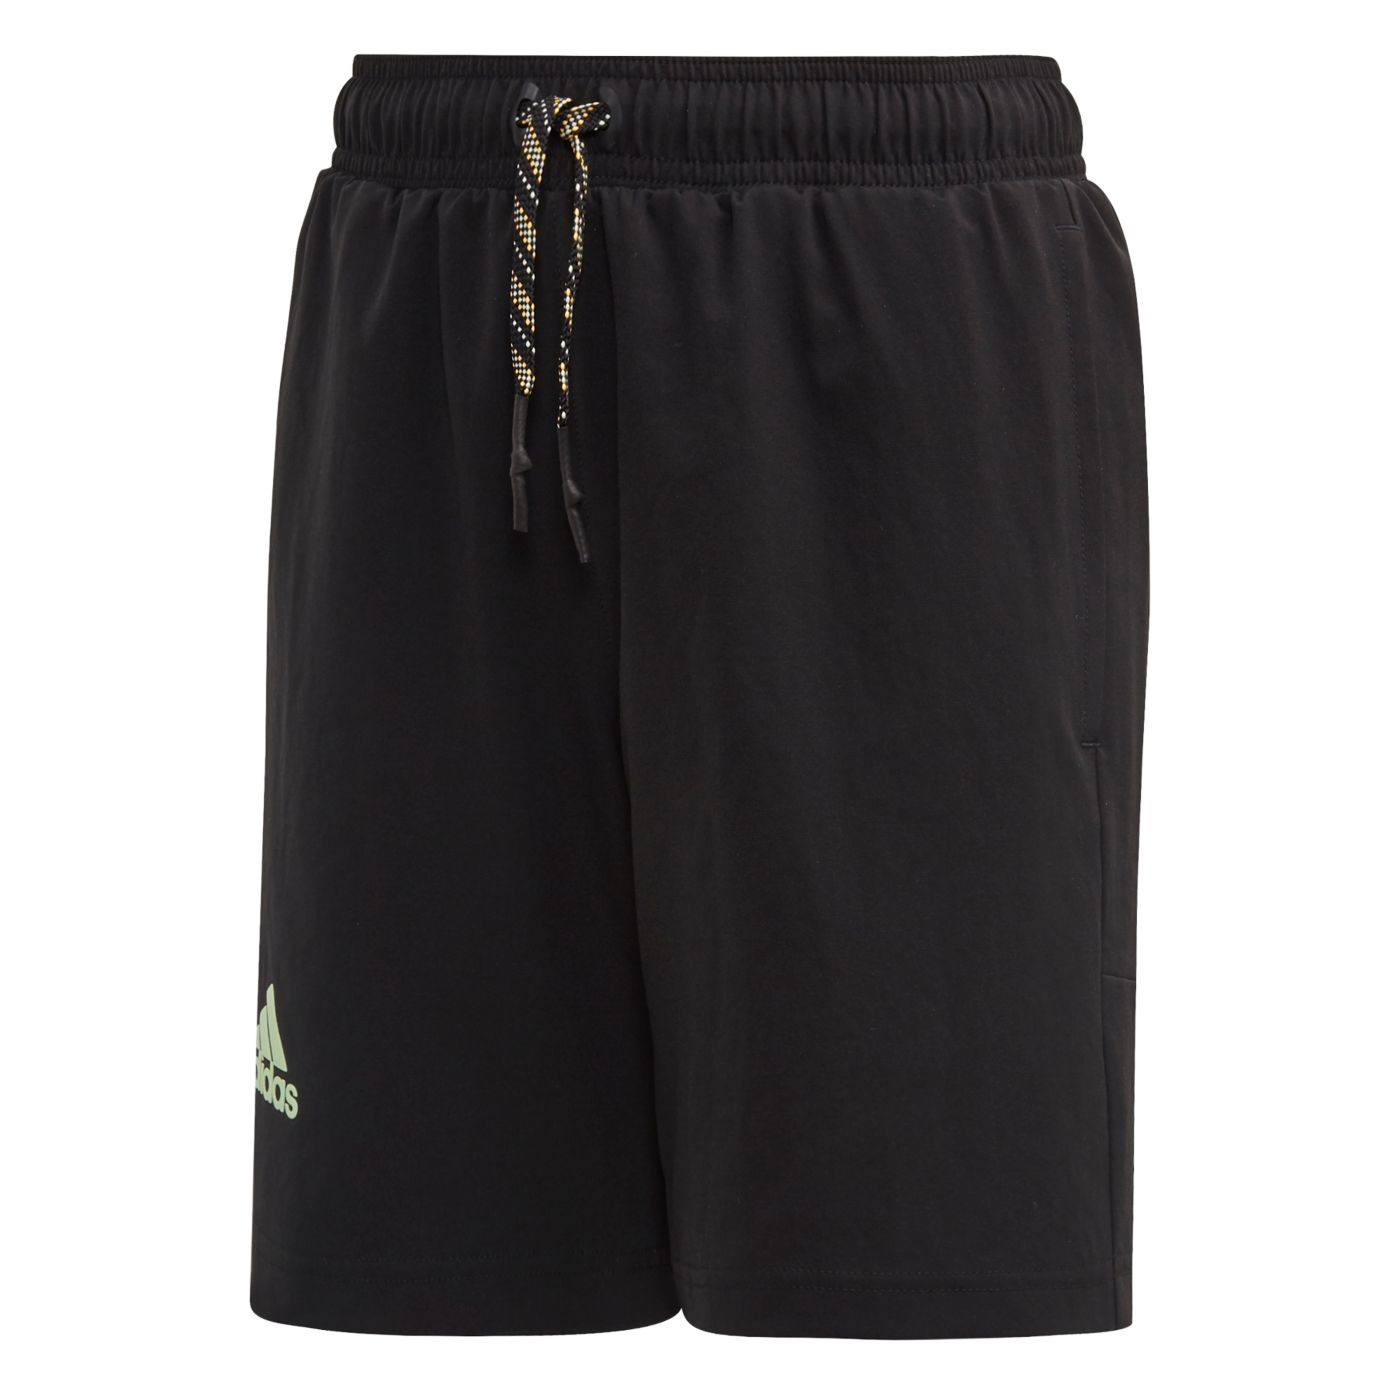 adidas Boys' New York Tennis Shorts